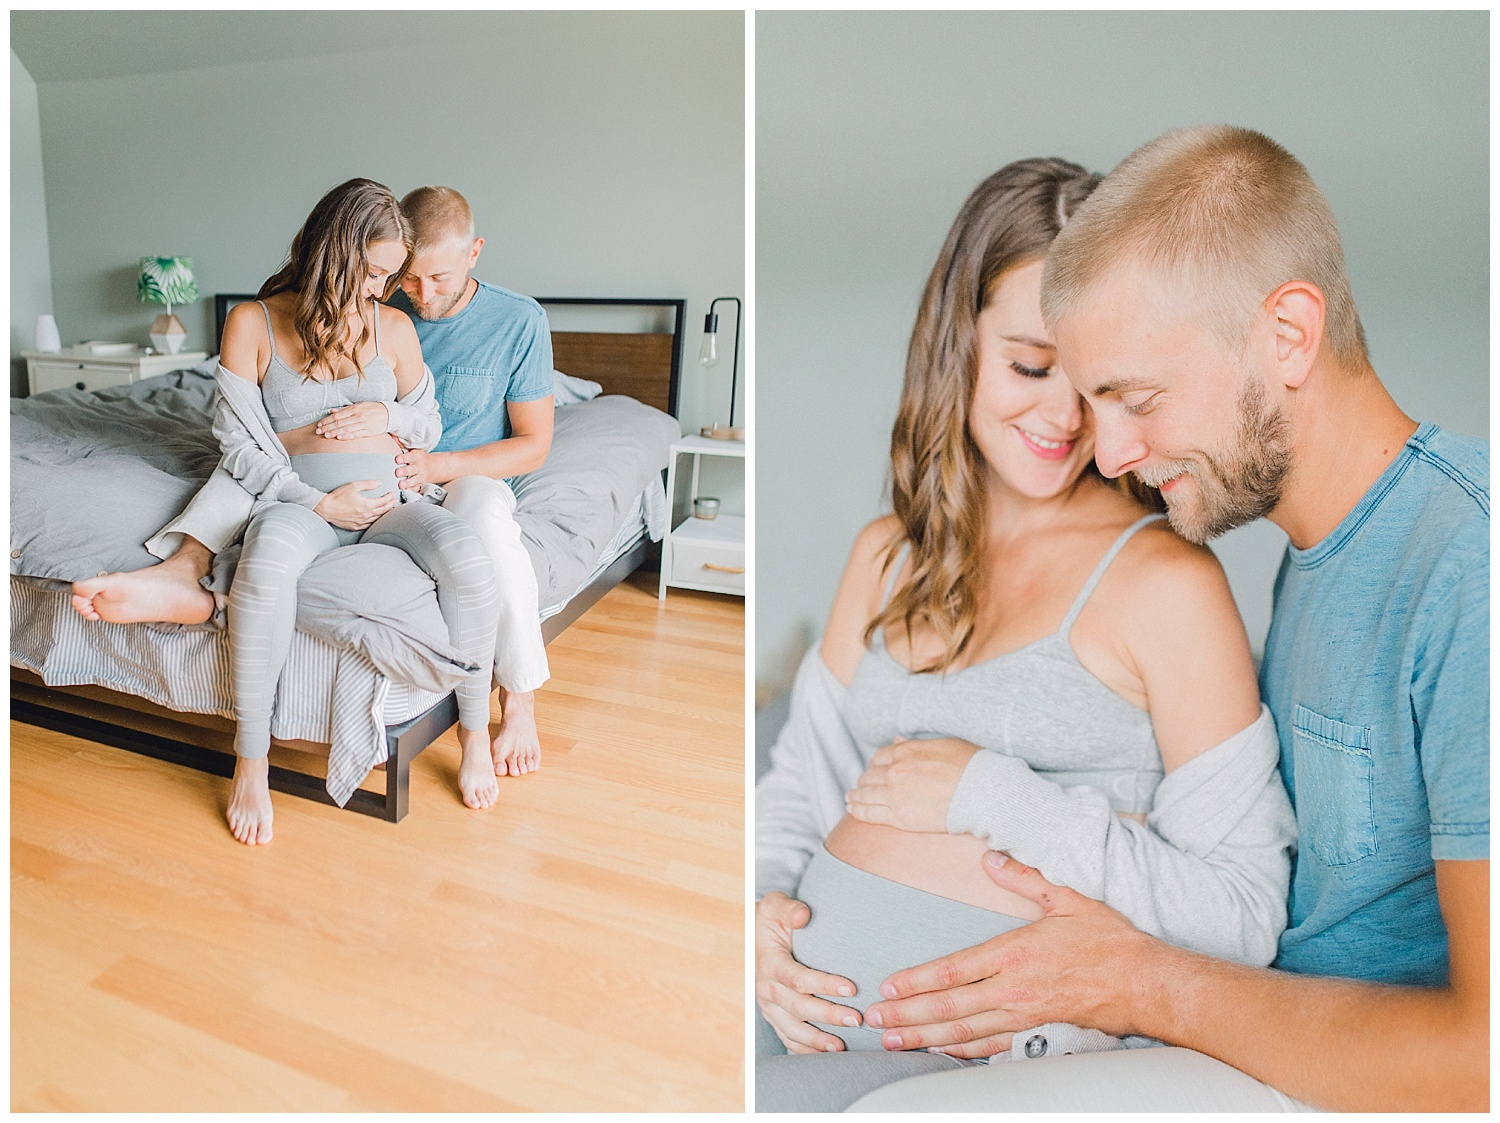 The Most Perfect In Home Maternity Lifestyle Photo Session | Pregnancy Goals | Emma Rose Company Seattle and Portland Wedding and Potrait Photographer | Dream Chasers Workshop_0019.jpg